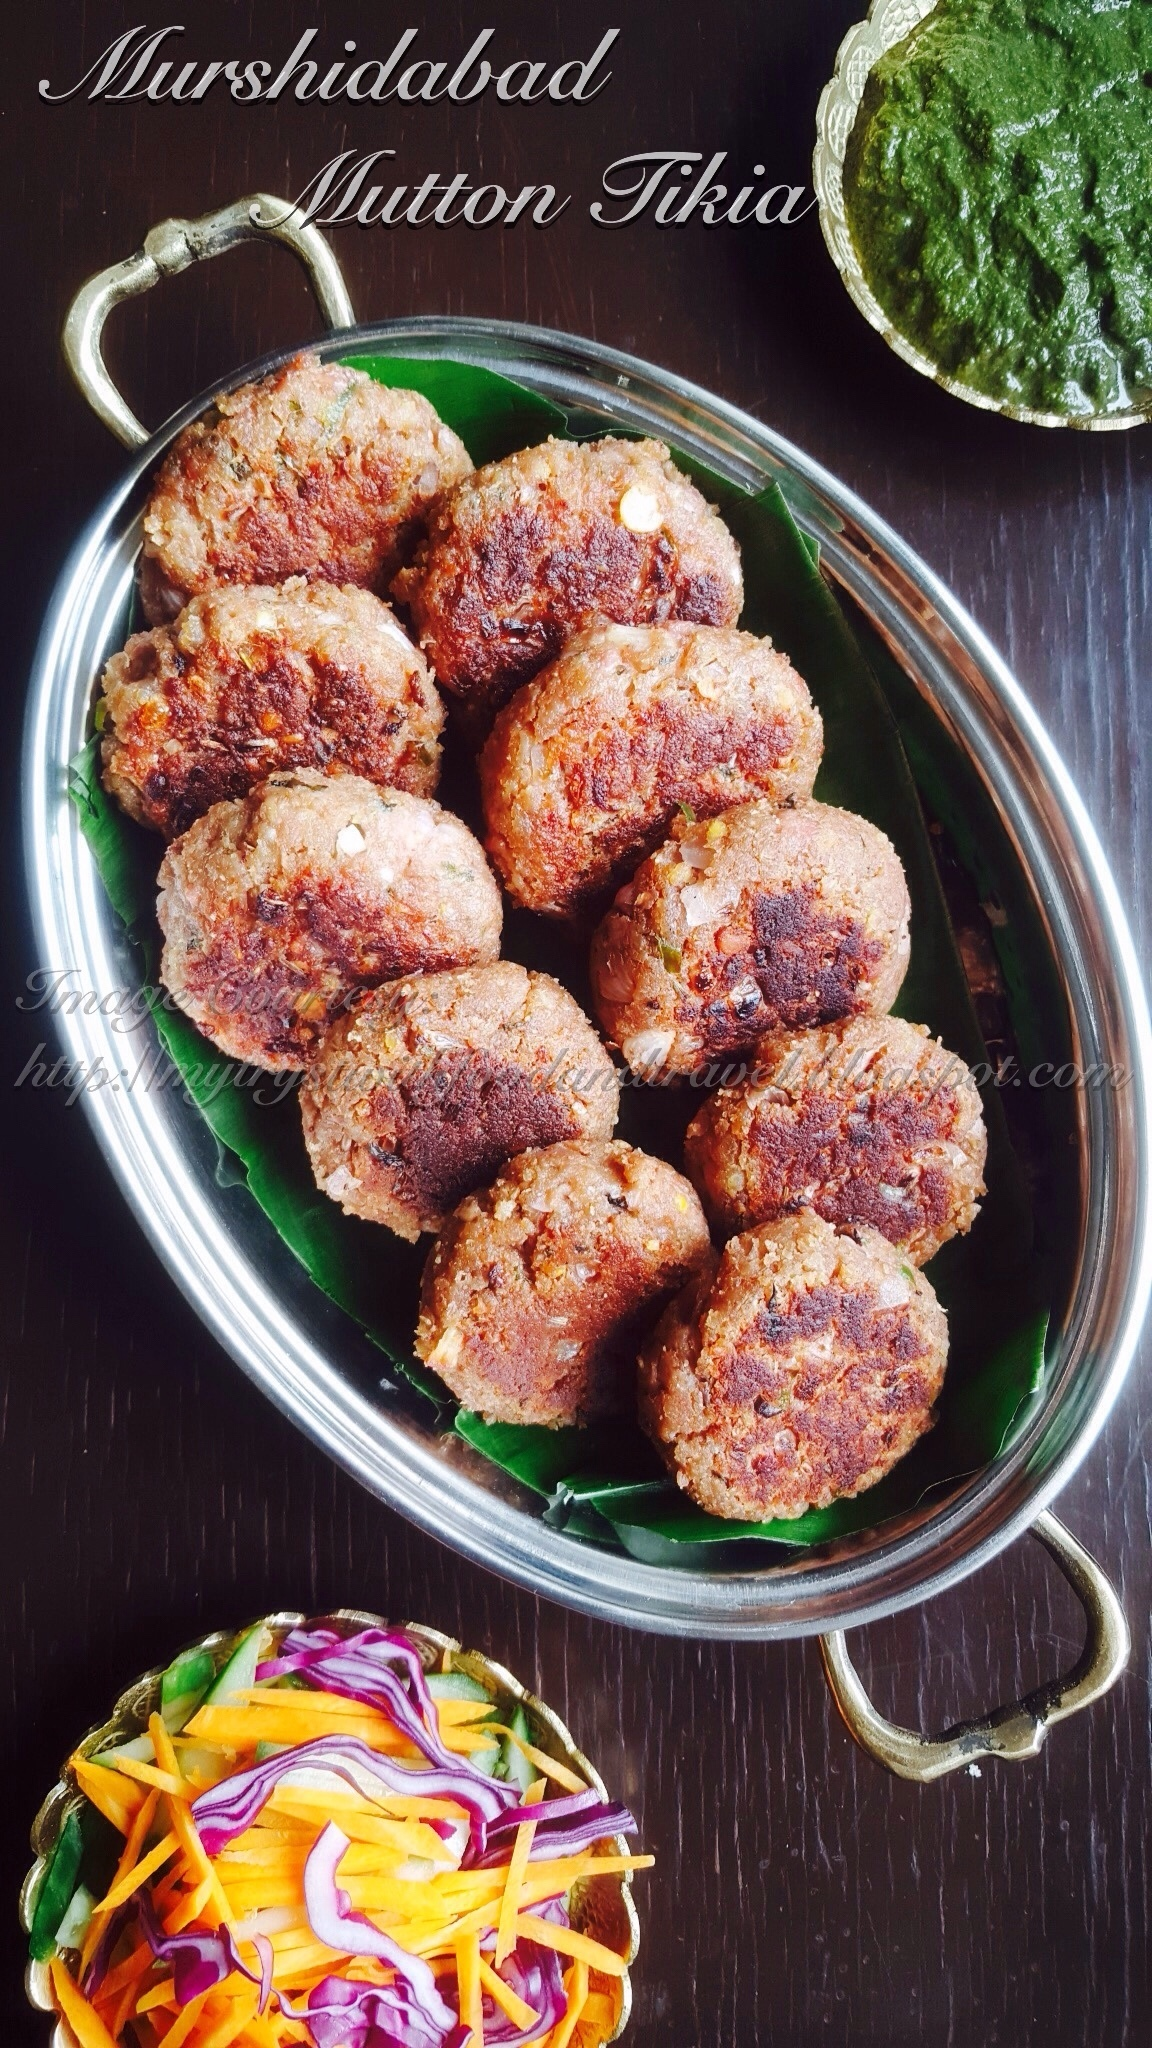 Murshidabad Mutton Tikia Recipe / Mutton Mince Patties Recipe (Murshidabad Style) / Mutton Keema Tikia Recipe ~ Just Recipes